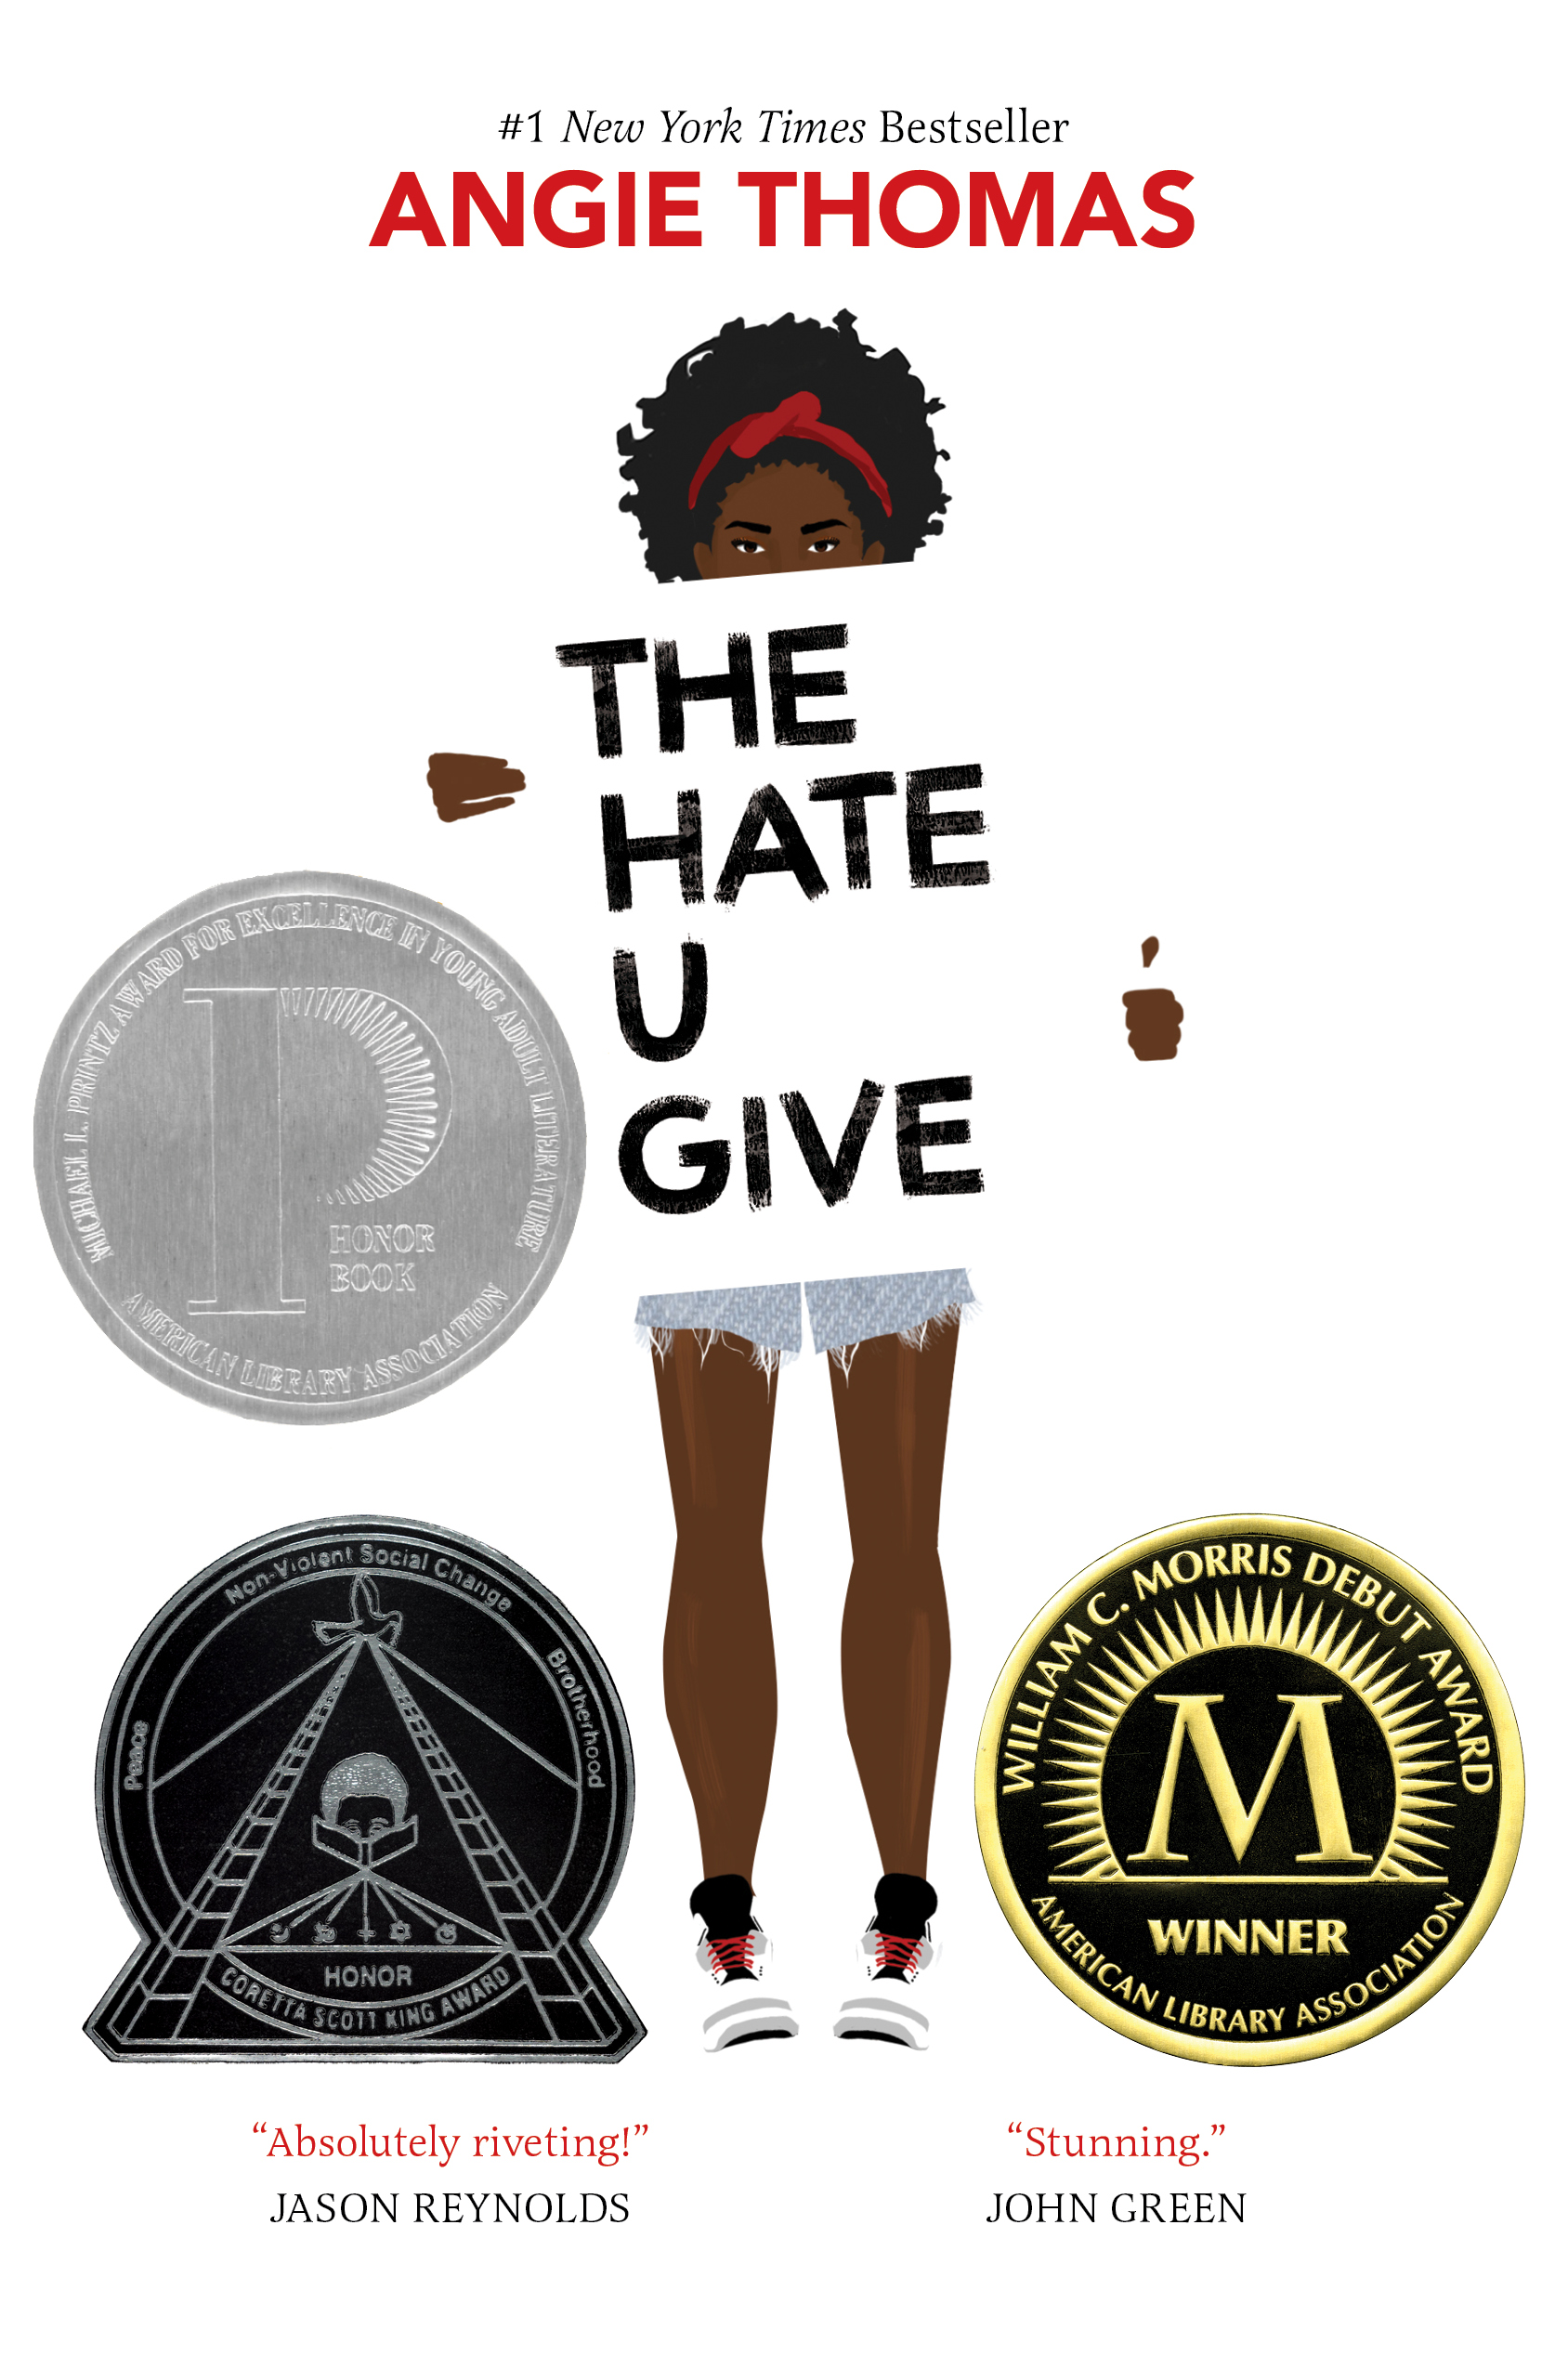 The Hate U Give by Angie Thomas awards and honors